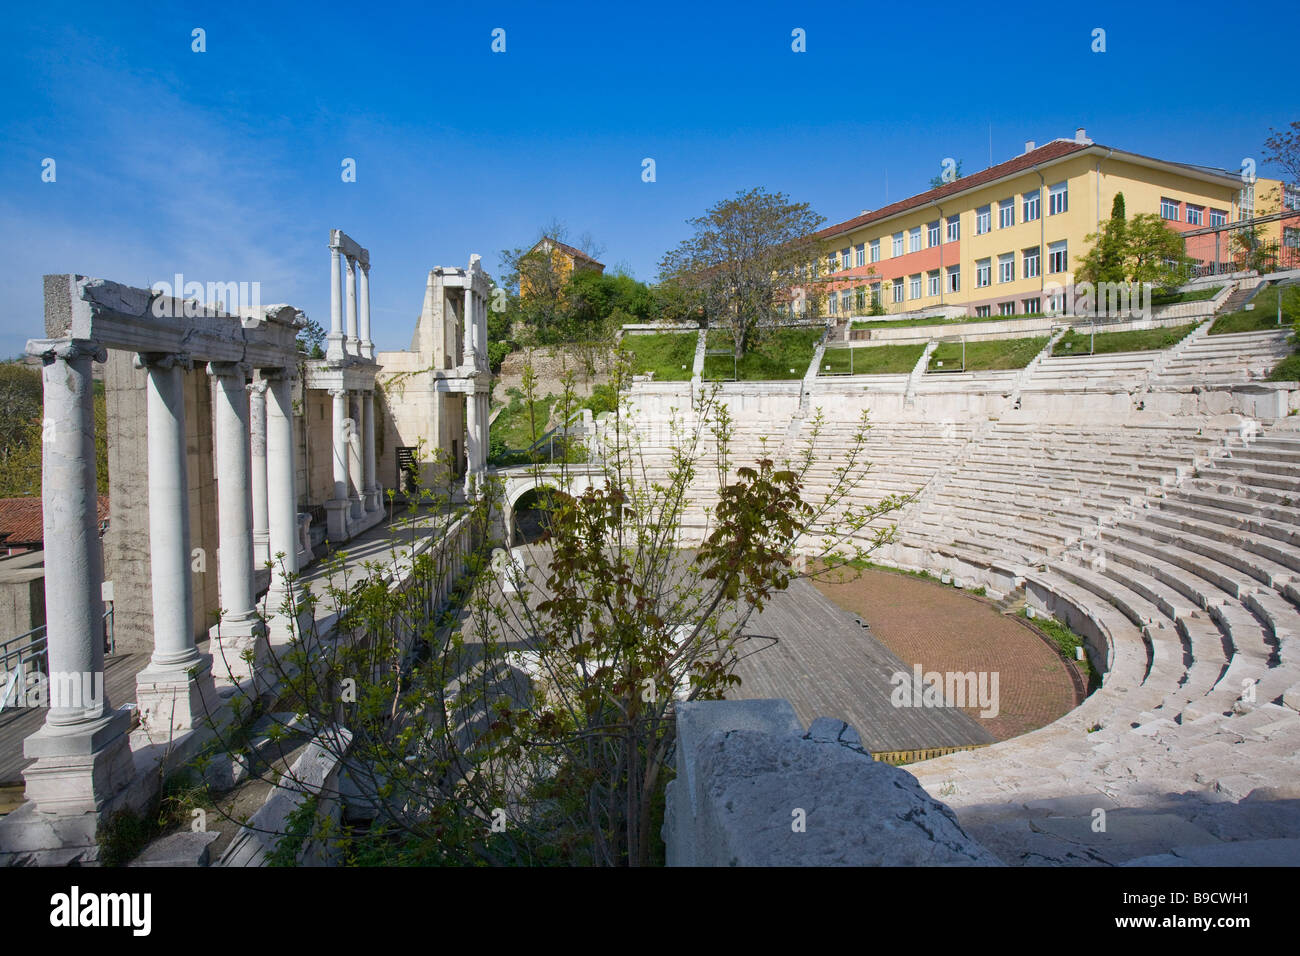 Theatre of Ancient Philippopolis roman theatre Plodviv Bulgaria - Stock Image